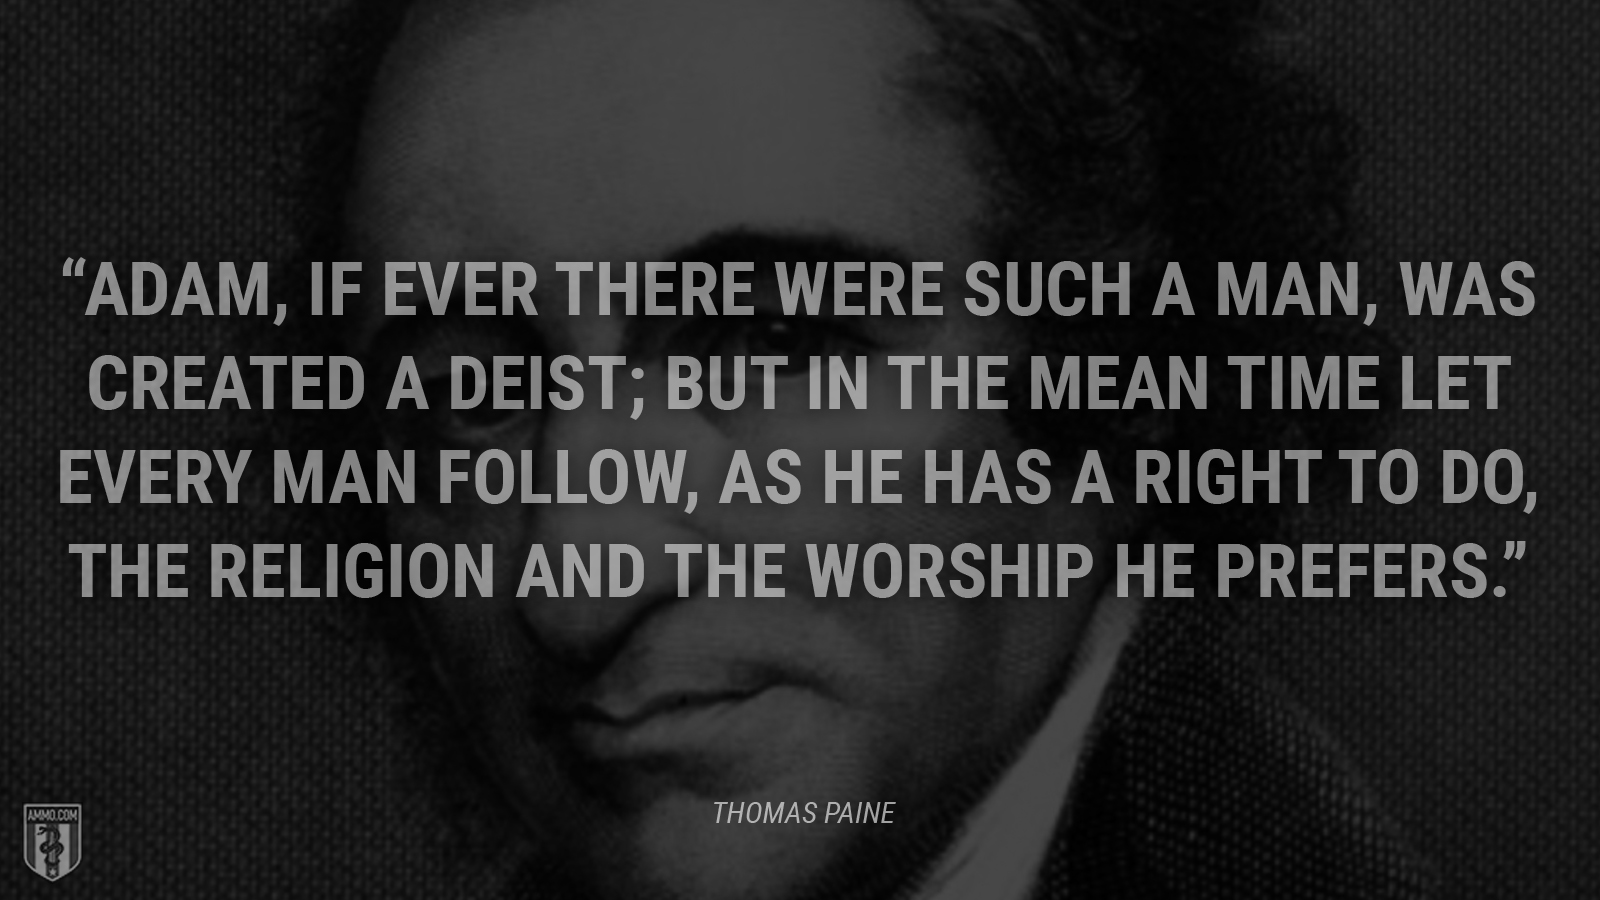 """Adam, if ever there were such a man, was created a Deist; but in the mean time let every man follow, as he has a right to do, the religion and the worship he prefers."" - Thomas Paine"